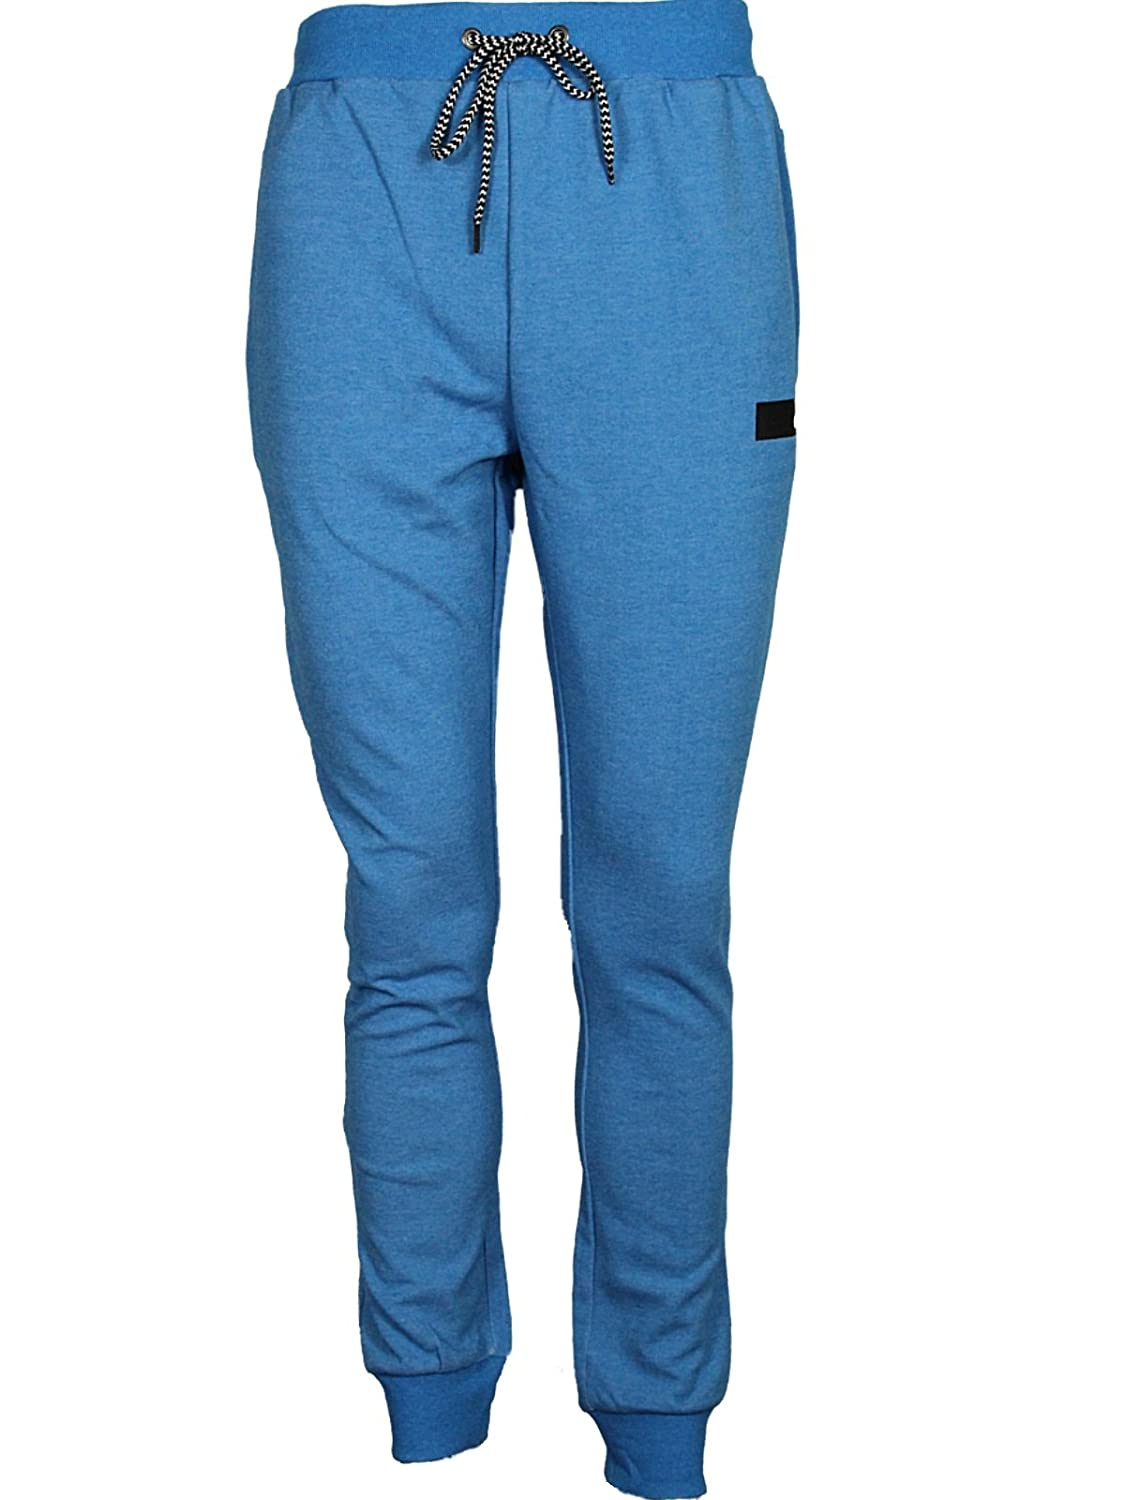 MENS TROUSER JOGGER PANTS IN GREY MARL & BLUE MARL COLOURS RRP 29.99